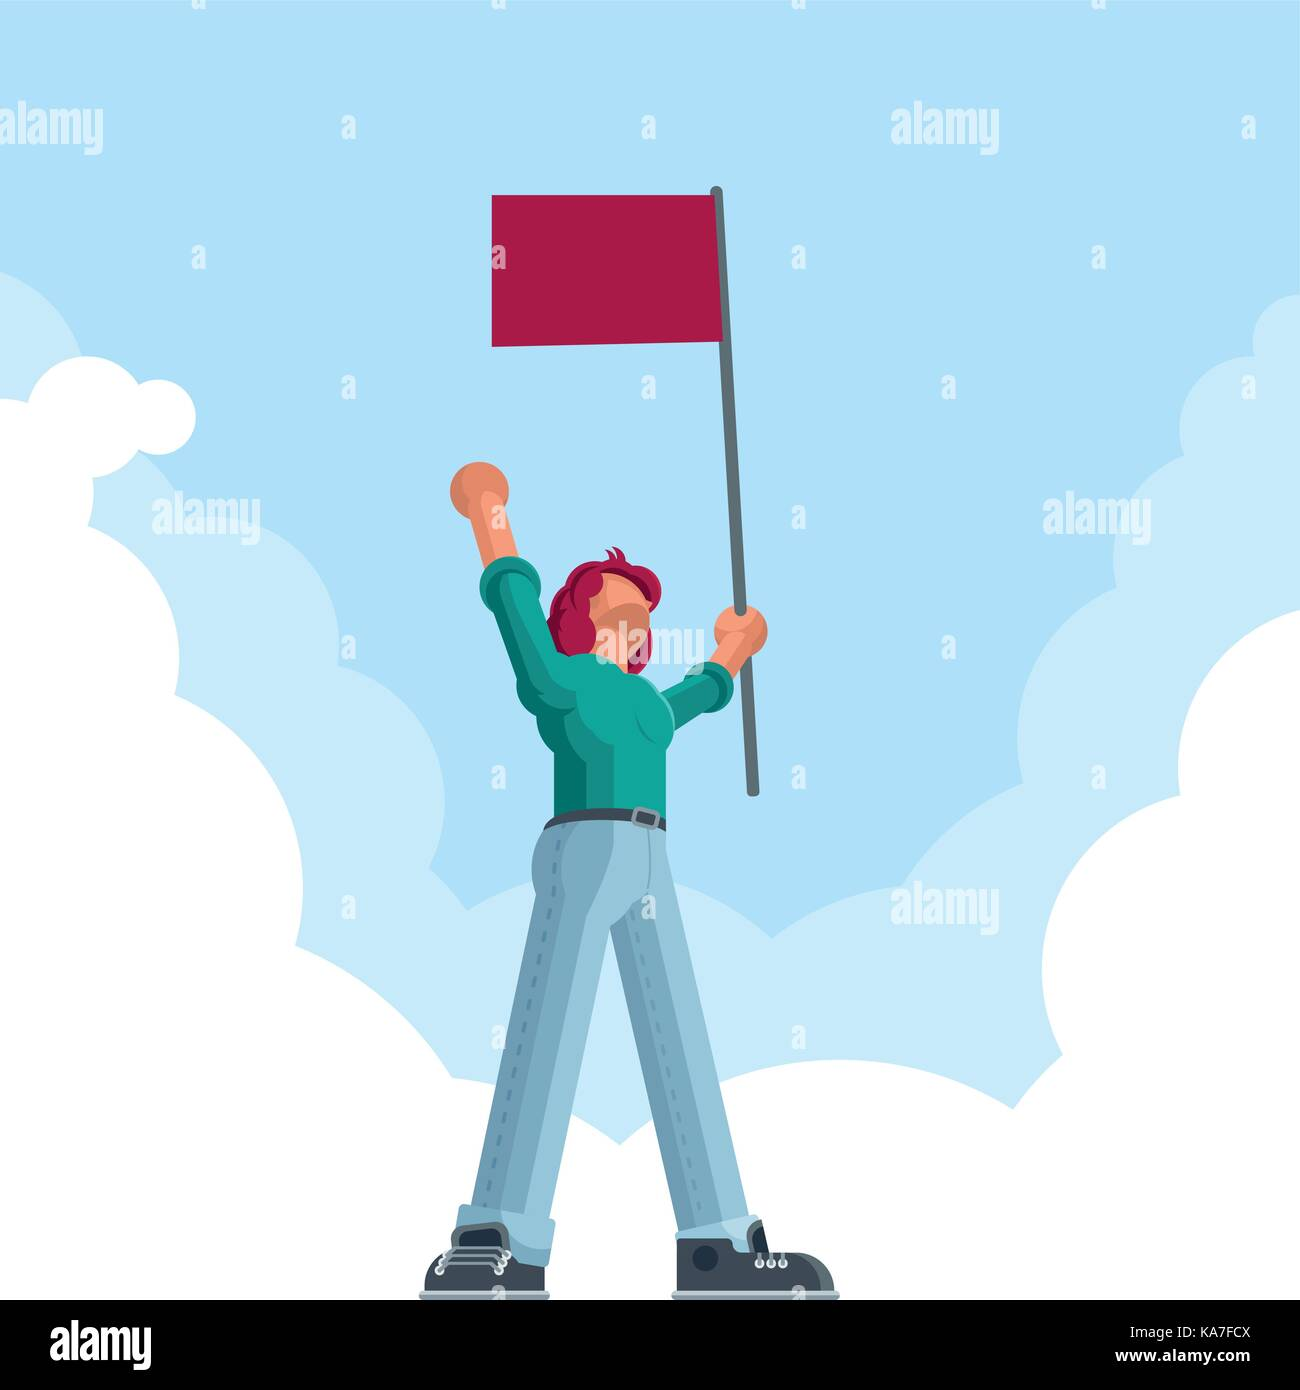 Successful man standing and holding a red flag and celebrating his victory. Vector concept illustration. - Stock Vector